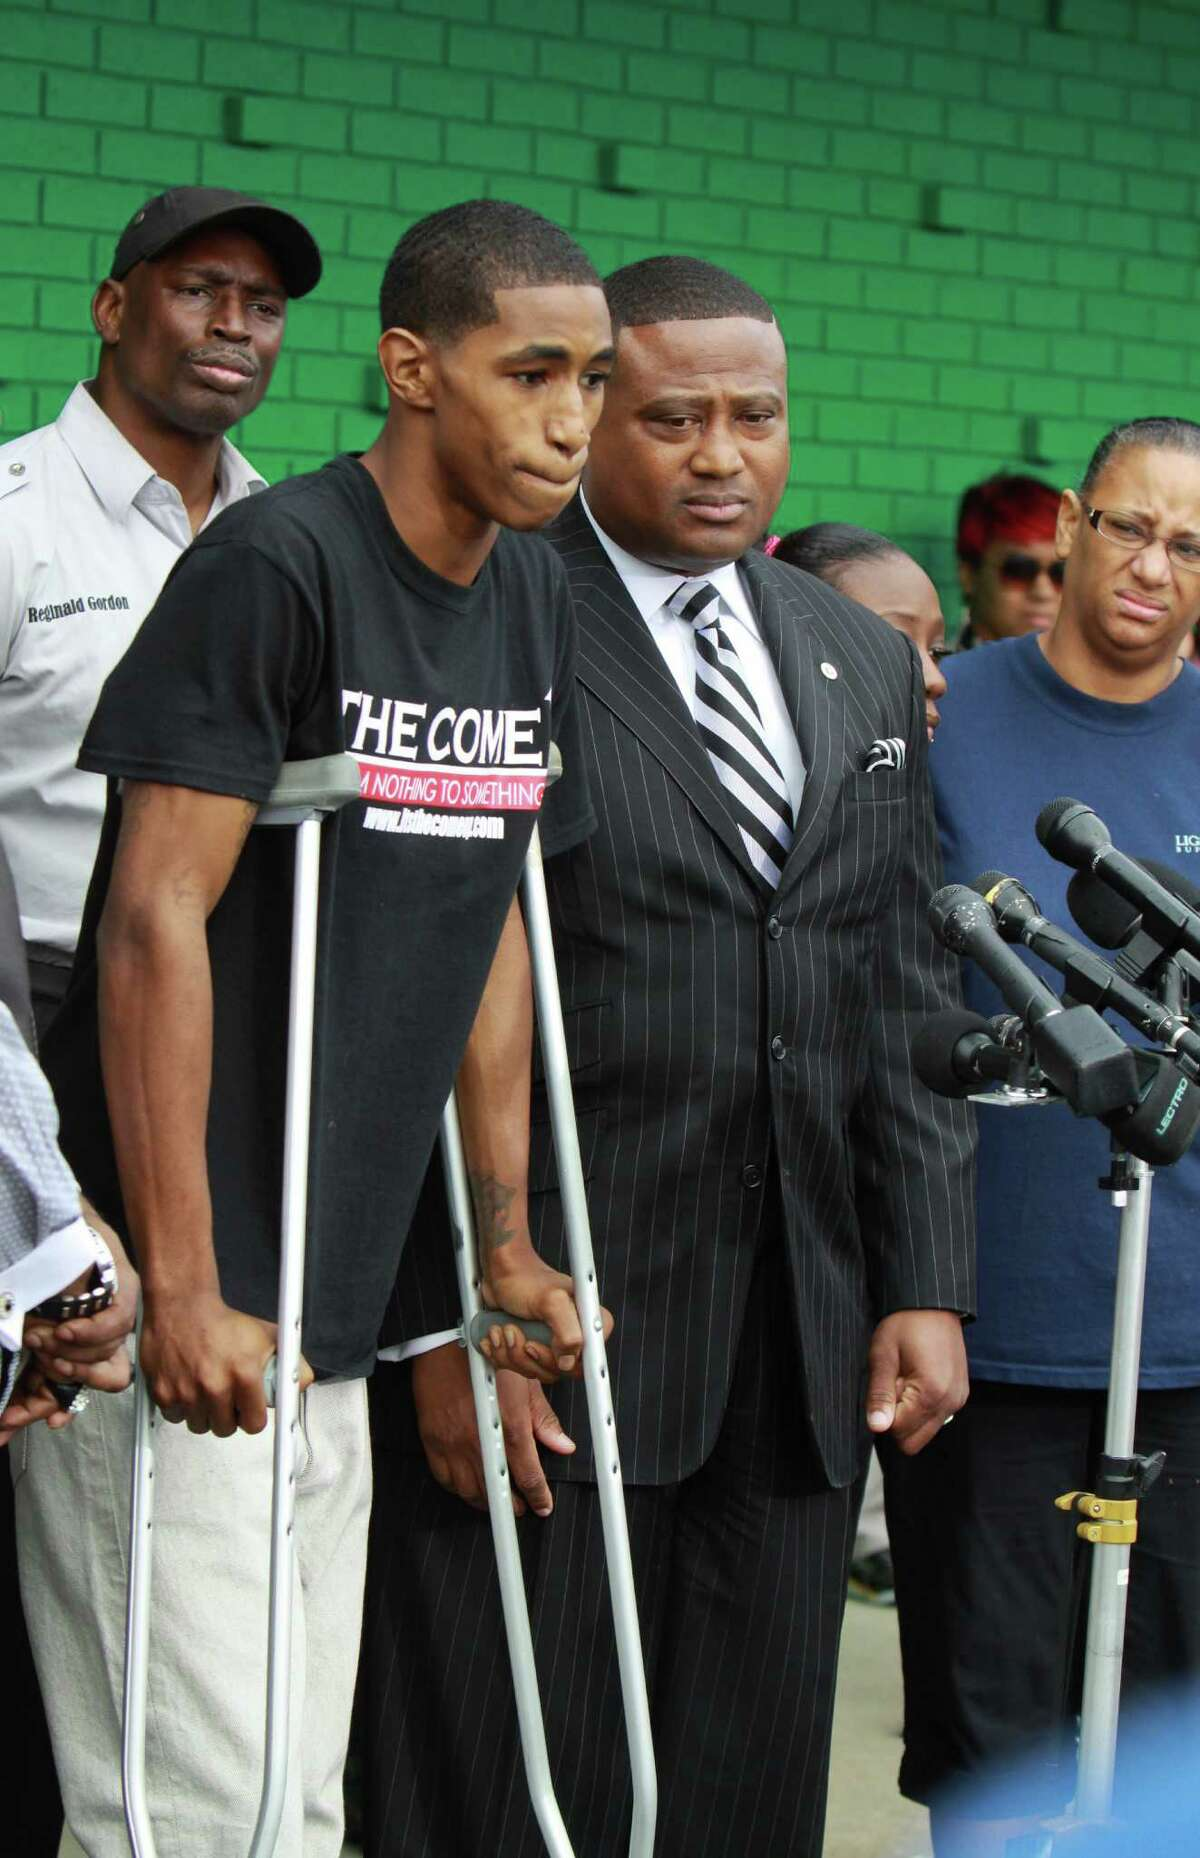 Carlton Berry, on crutches alongside activist Quanell X and other community leaders, asked Sheriff Adrian Garcia for an apology Tuesday after the Lone Star College student was cleared of charges in last week's campus shooting.